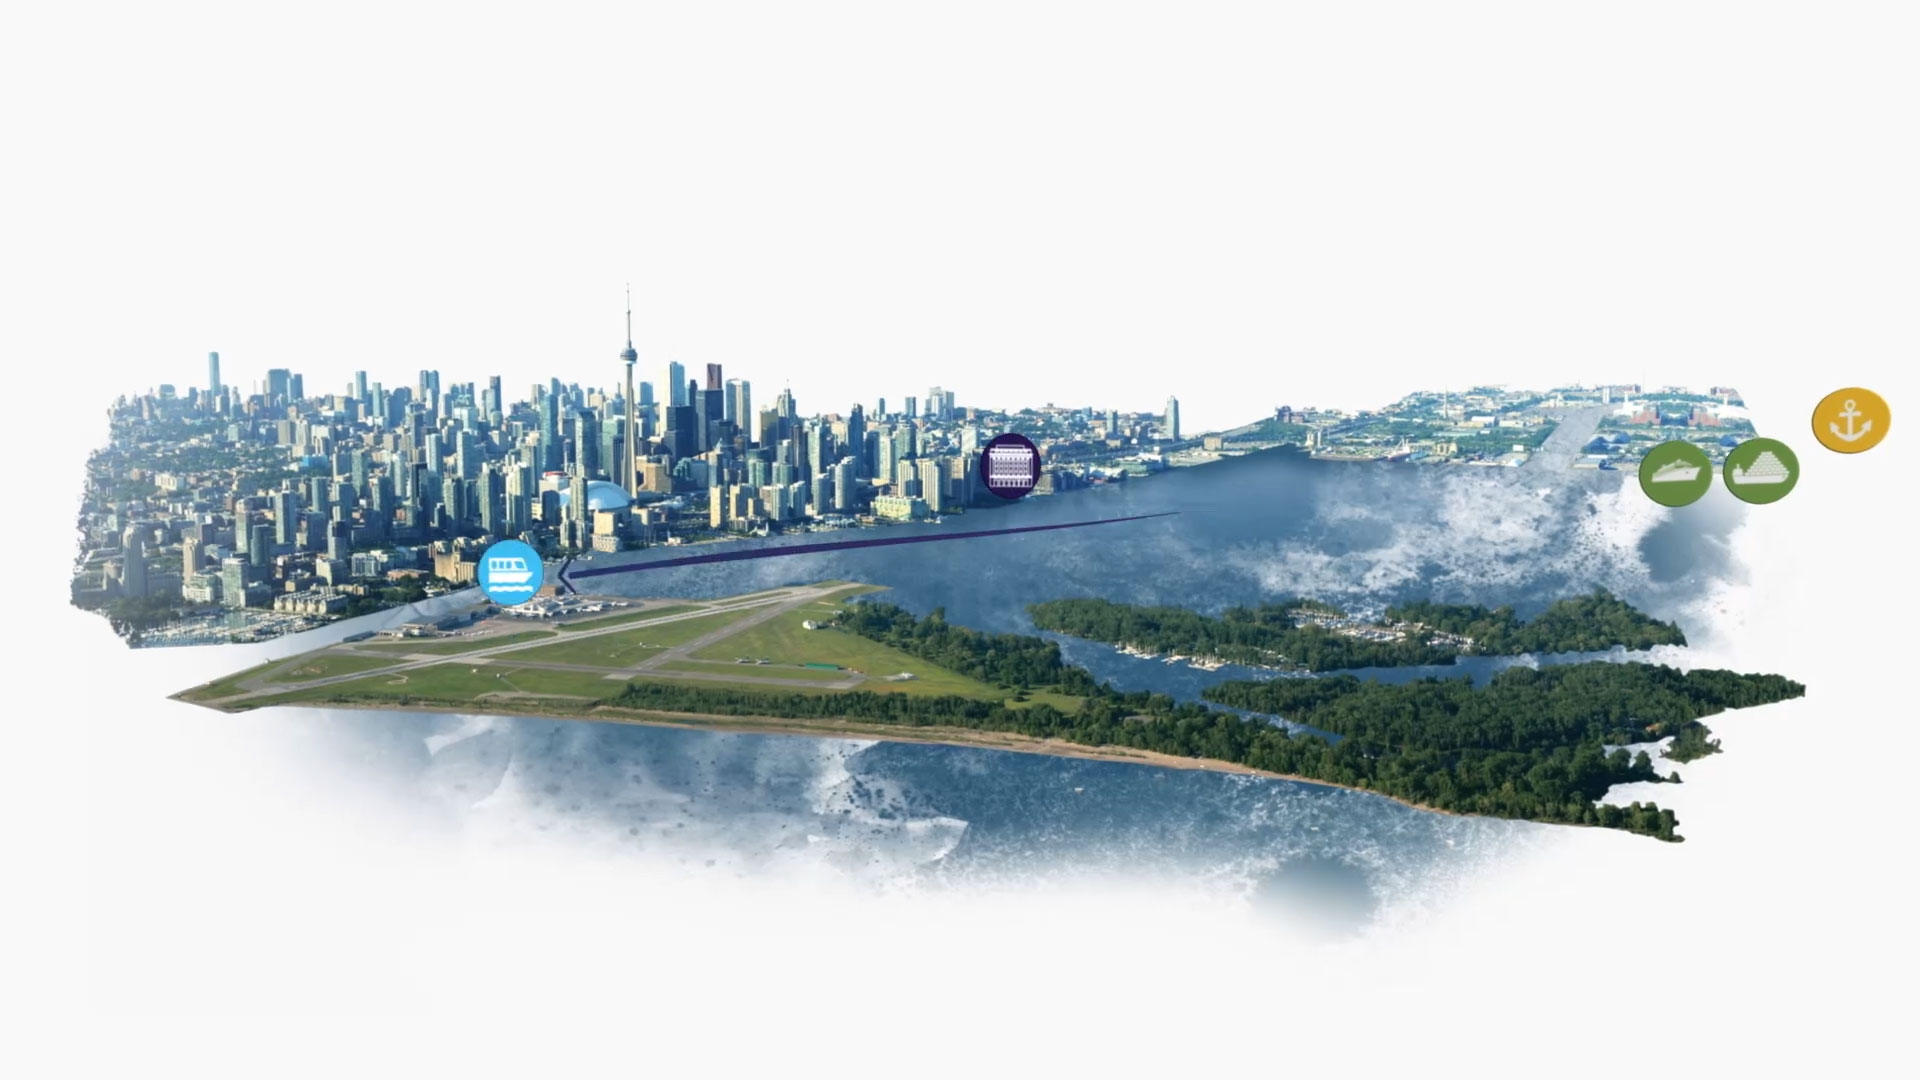 toronto island airport and city scape